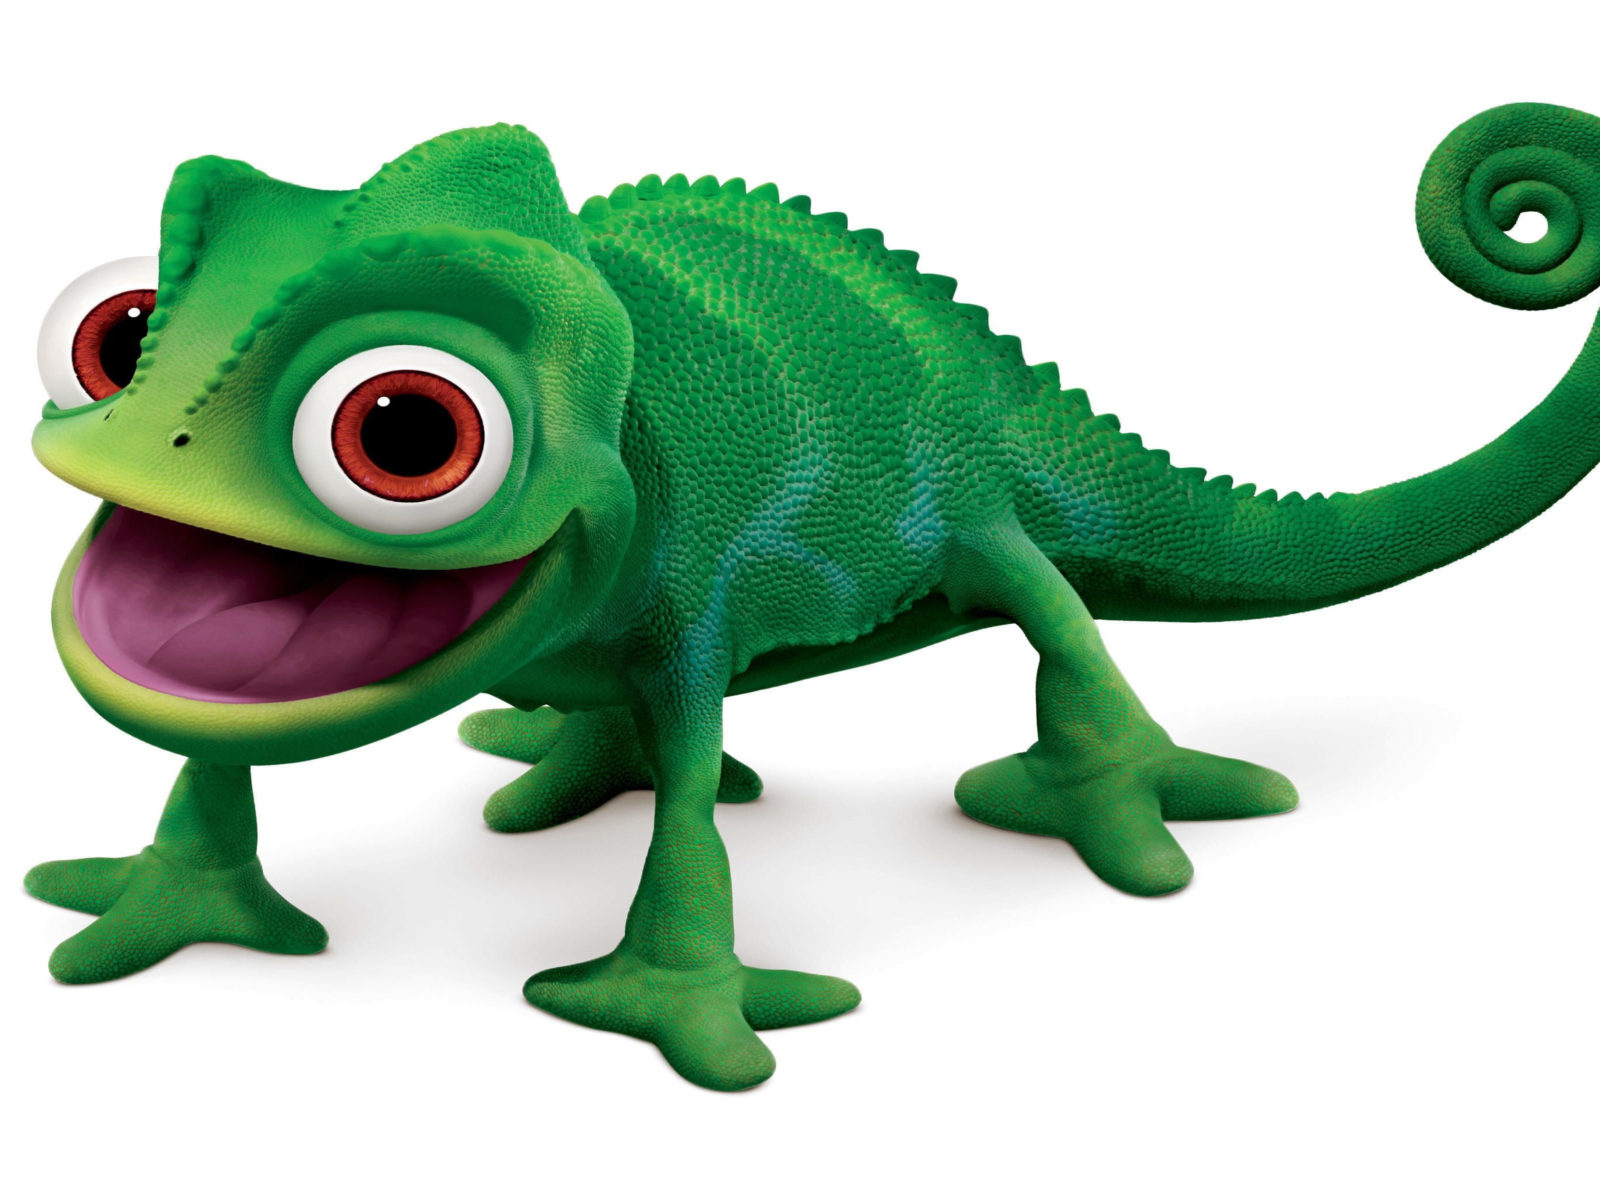 New Cute Girl Wallpaper Download Green Chameleon Animal Toy Long Tongue Wallpapers